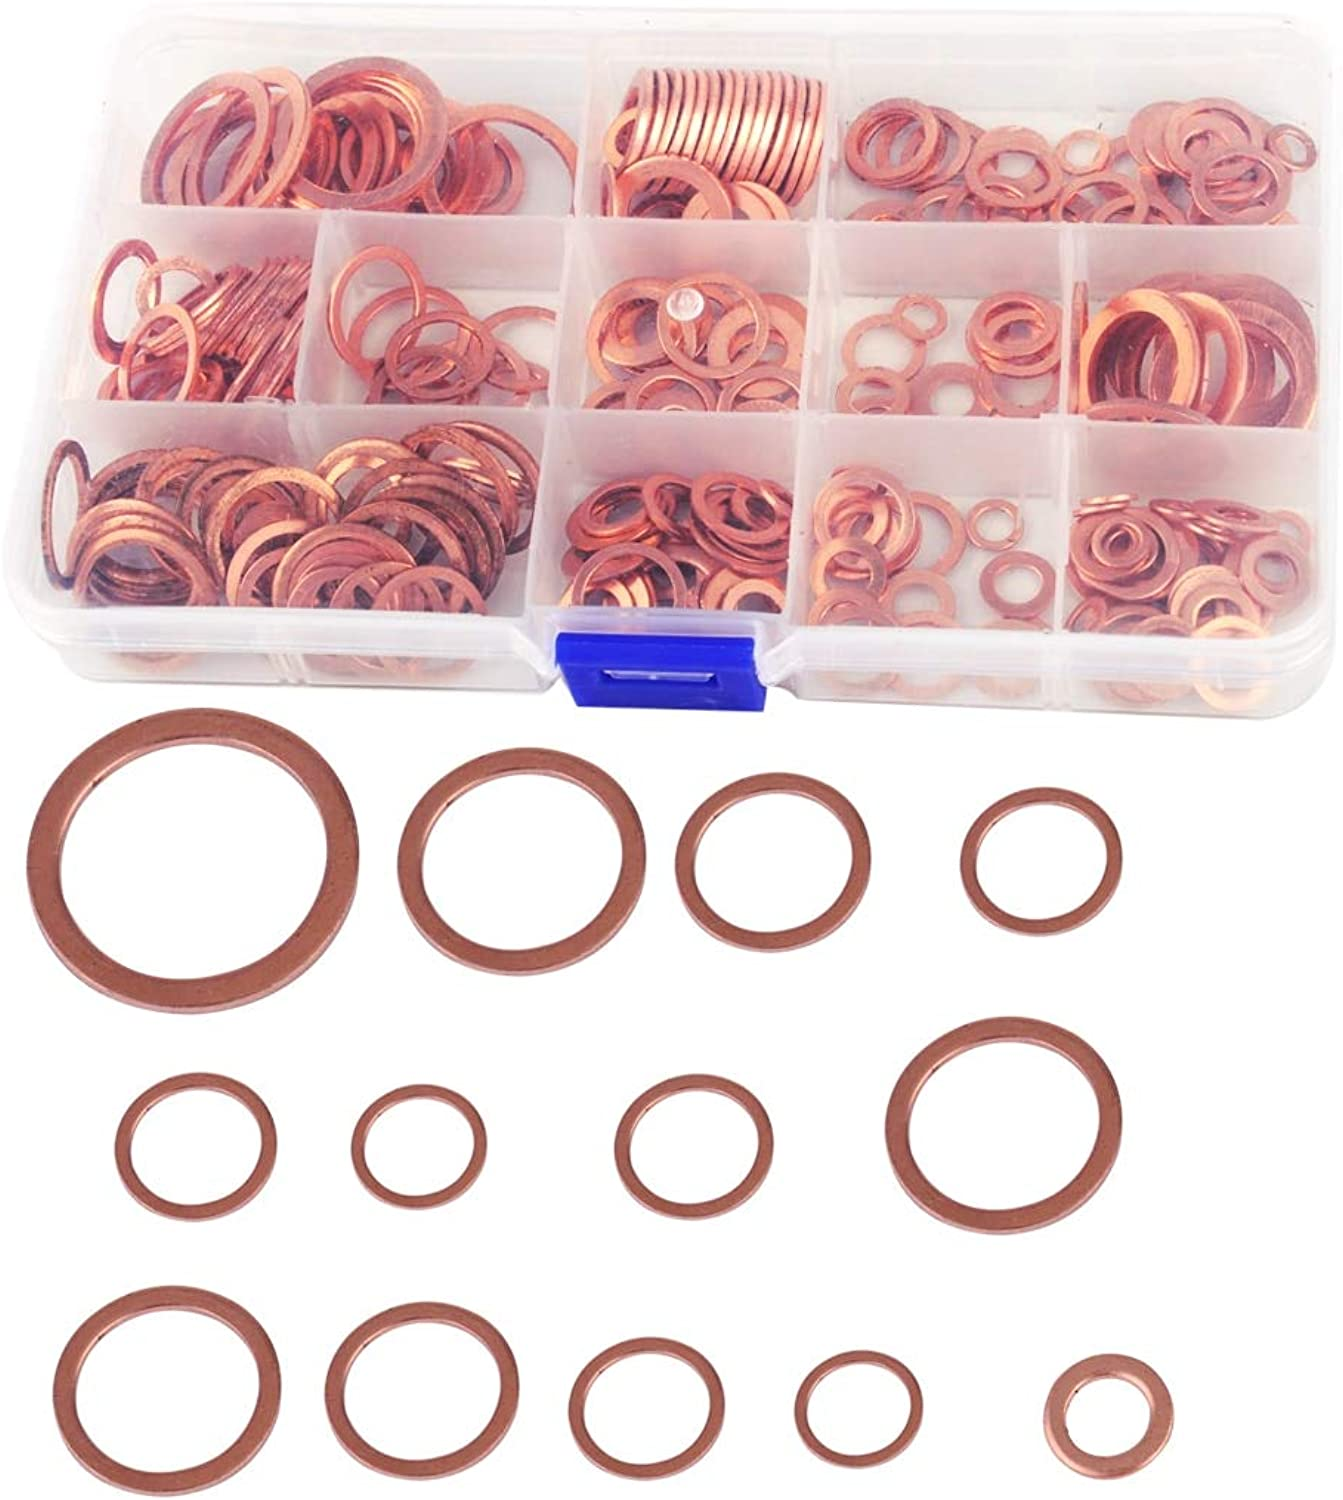 SalaBoxAccessories  280x Assorted Engine Box Washers Solid Red Copper Sump Plug Washer Seal Flat Ring Set + Box for VW Audi BMW Honda Kia Ford